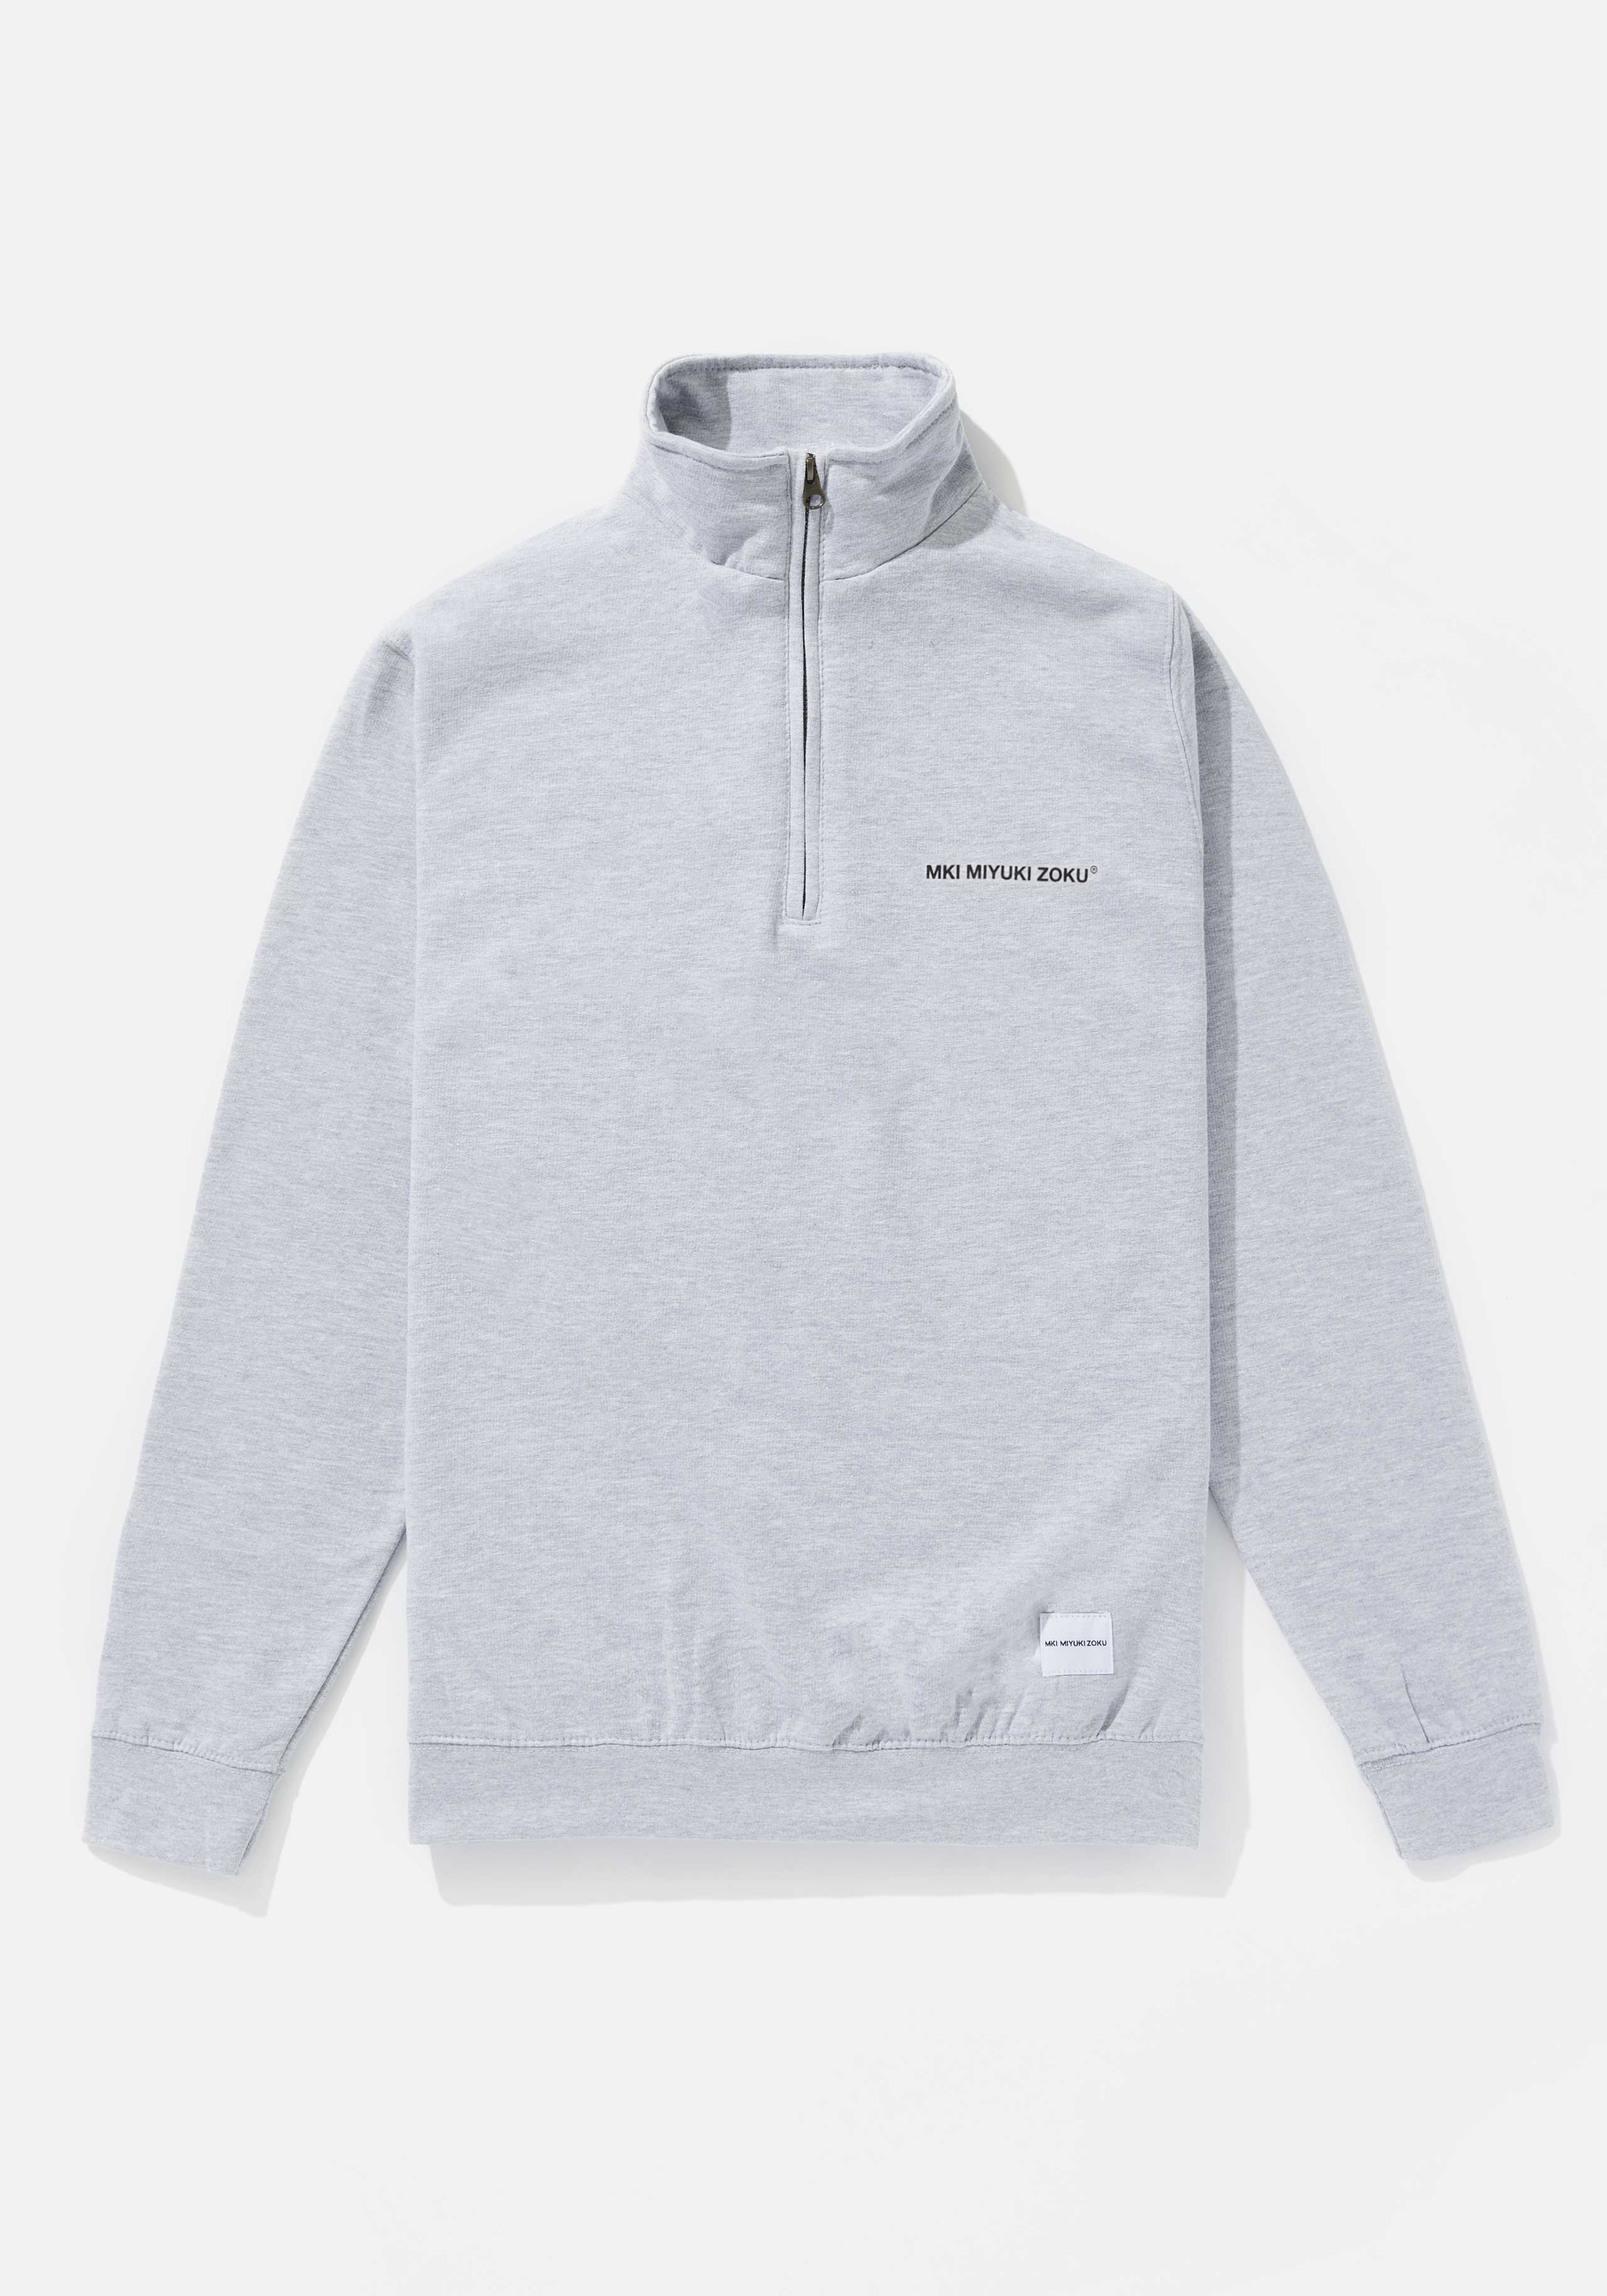 MKI REGISTERED LOGO QUARTER ZIP 1